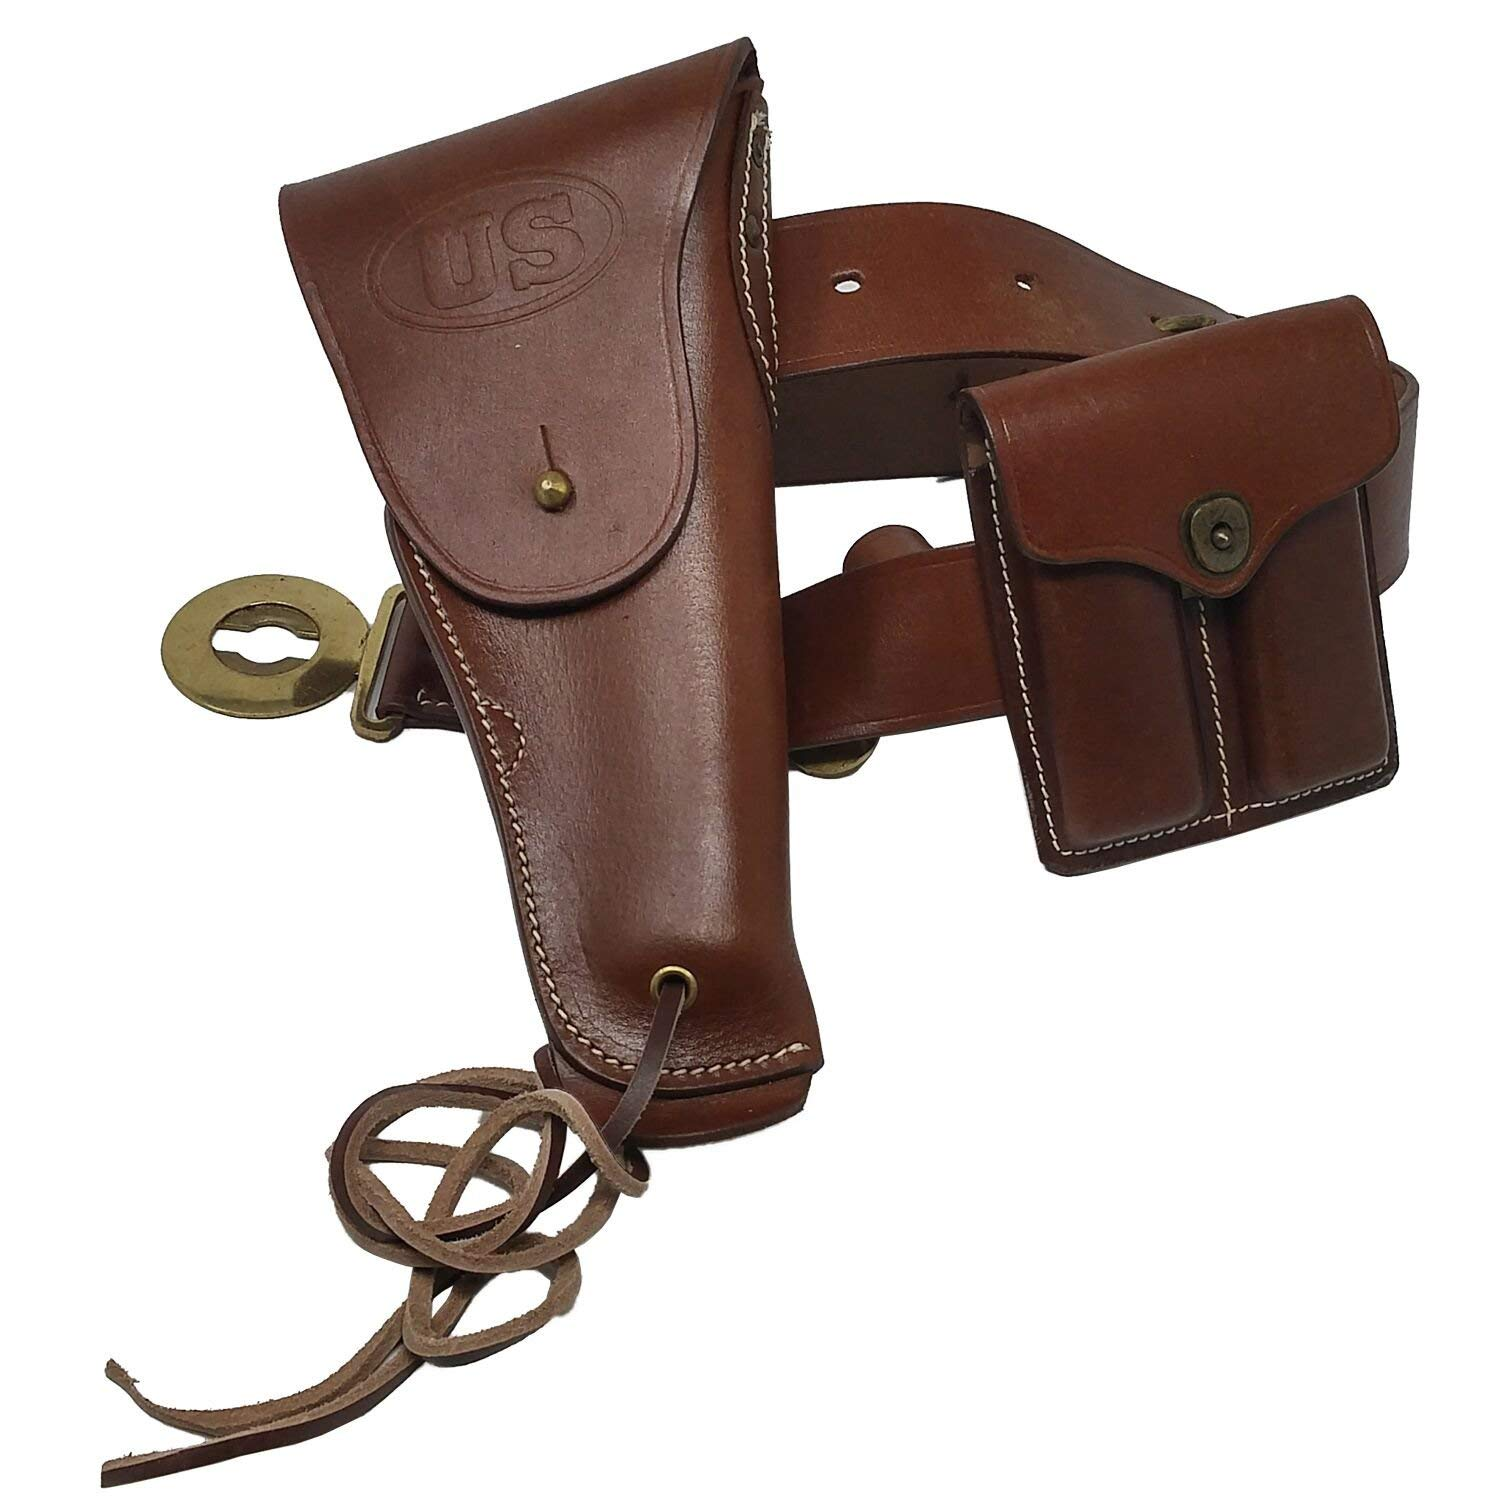 Buy U S  WWII M3  45 1911 Pistol Leather Shoulder Holster